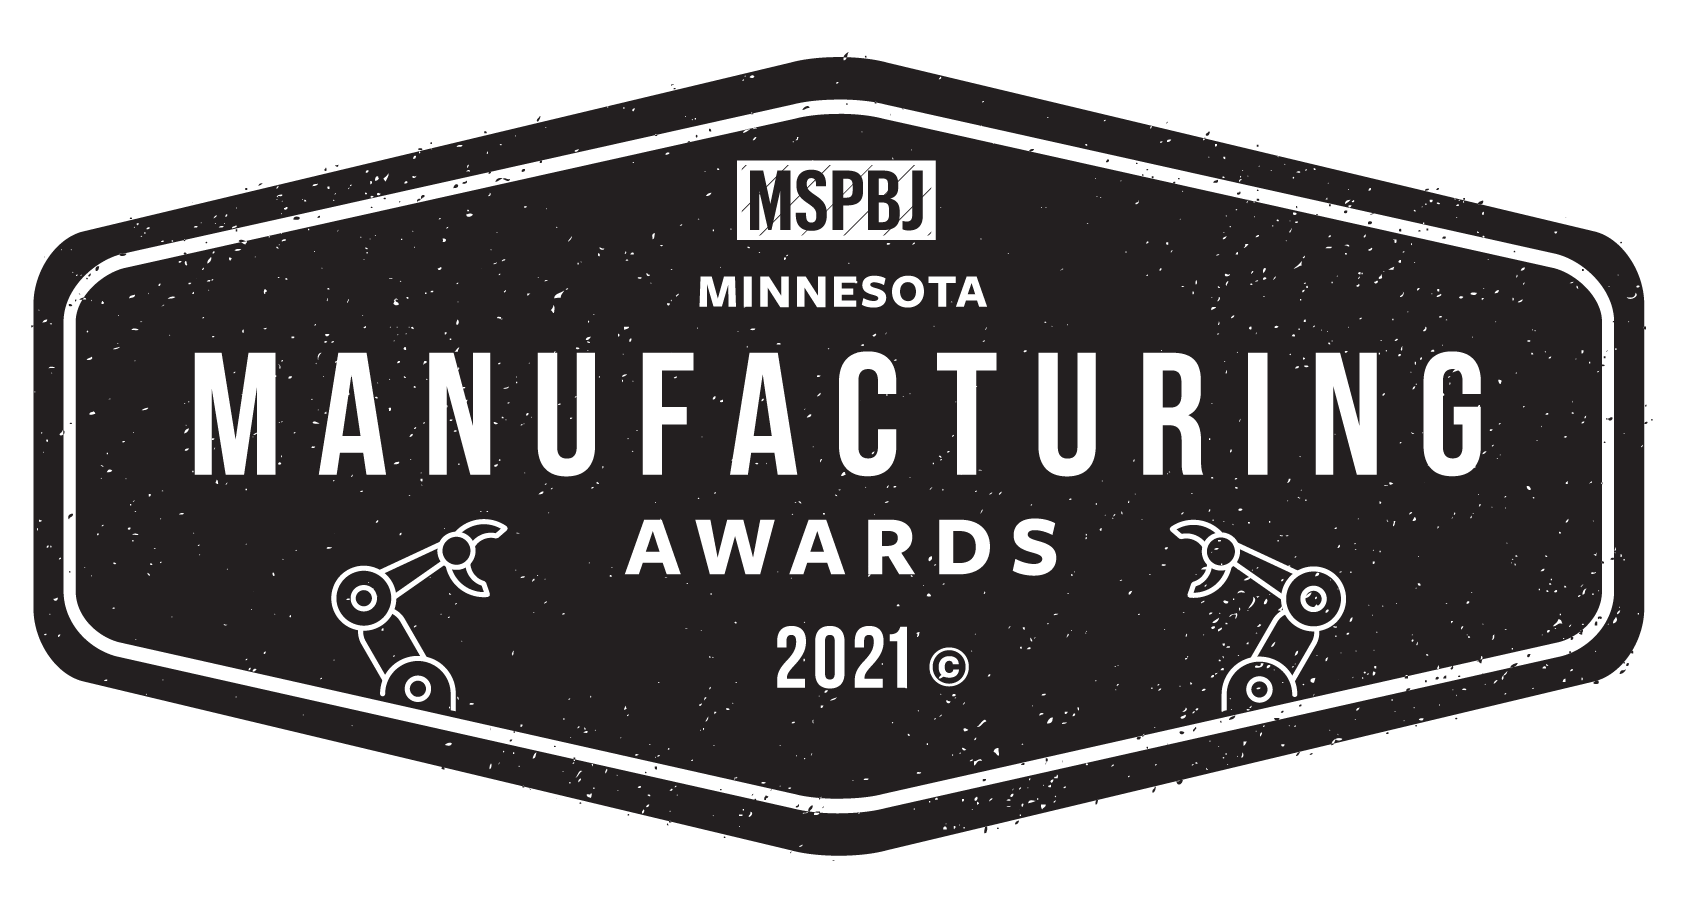 Tapemark Selected as Minnesota Manufacturing Awards Honoree by Minneapolis/St. Paul Business Journal